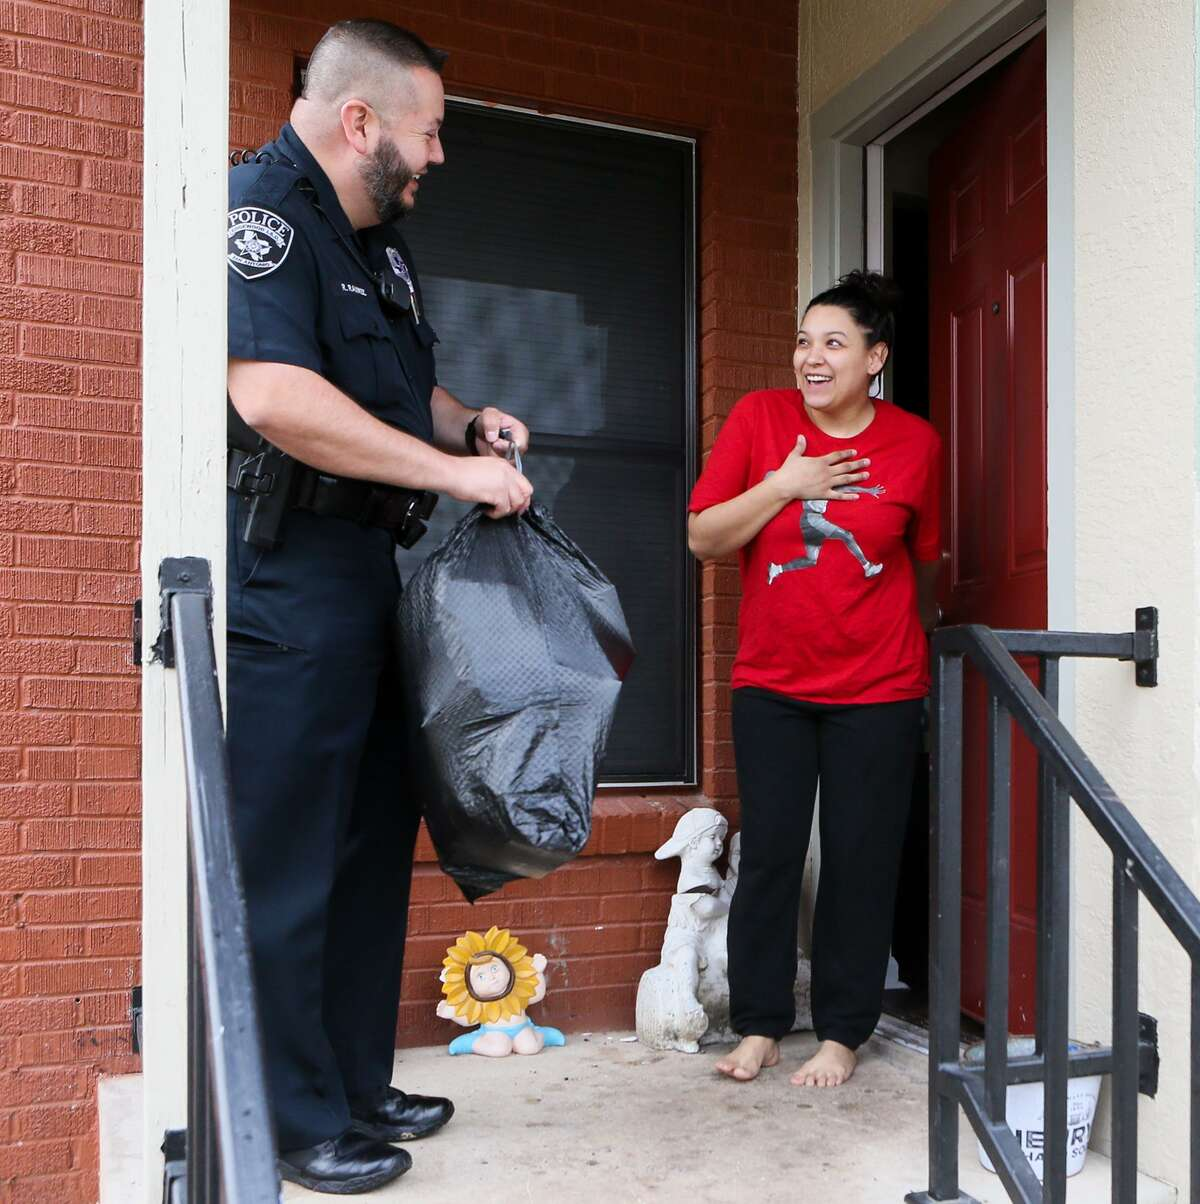 Edgewood ISD police officer Rene Ramirez delivers Christmas presents to Frances Morales' six children on Wednesday, Dec. 19, 2018. For the fourth consecutive year, the Edgewood ISD police department is delivering presents to more than 200 children in the school district, identified by officers, counselors and teachers, that might not otherwise receive presents.